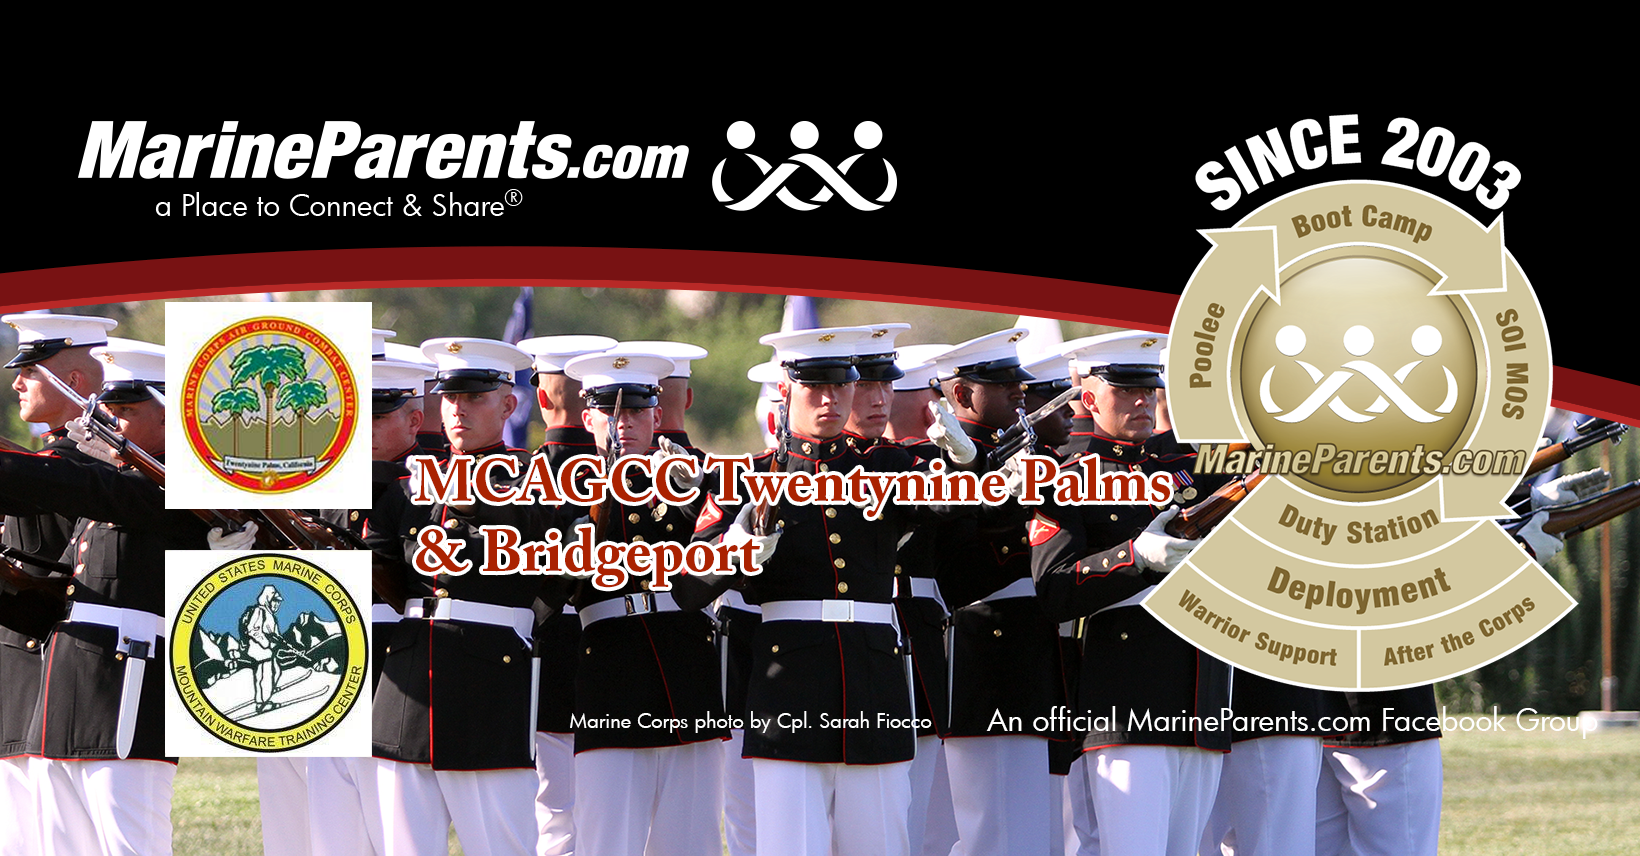 MarineParents.com MPTwentyninePalms